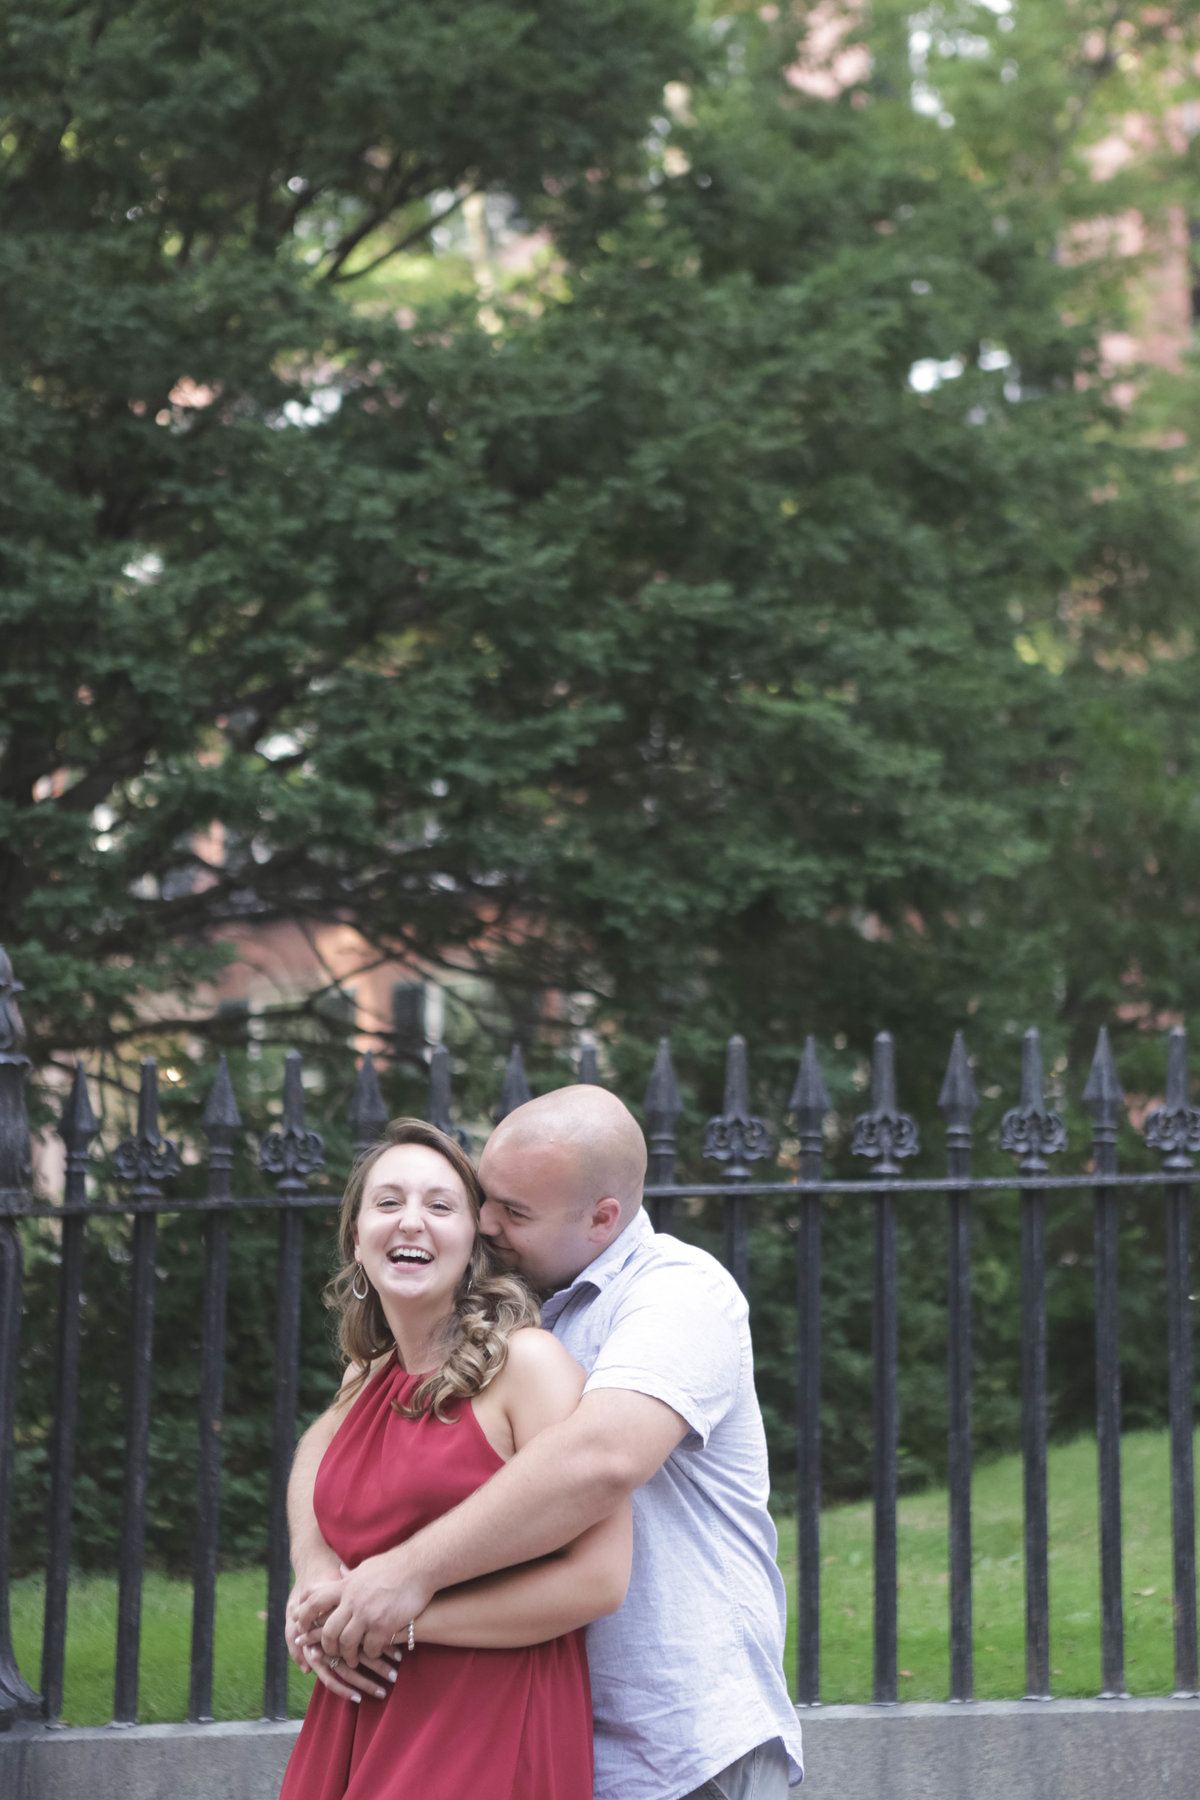 acorn_street_engagement_photos_boston_wedding_photographer4O6A0976